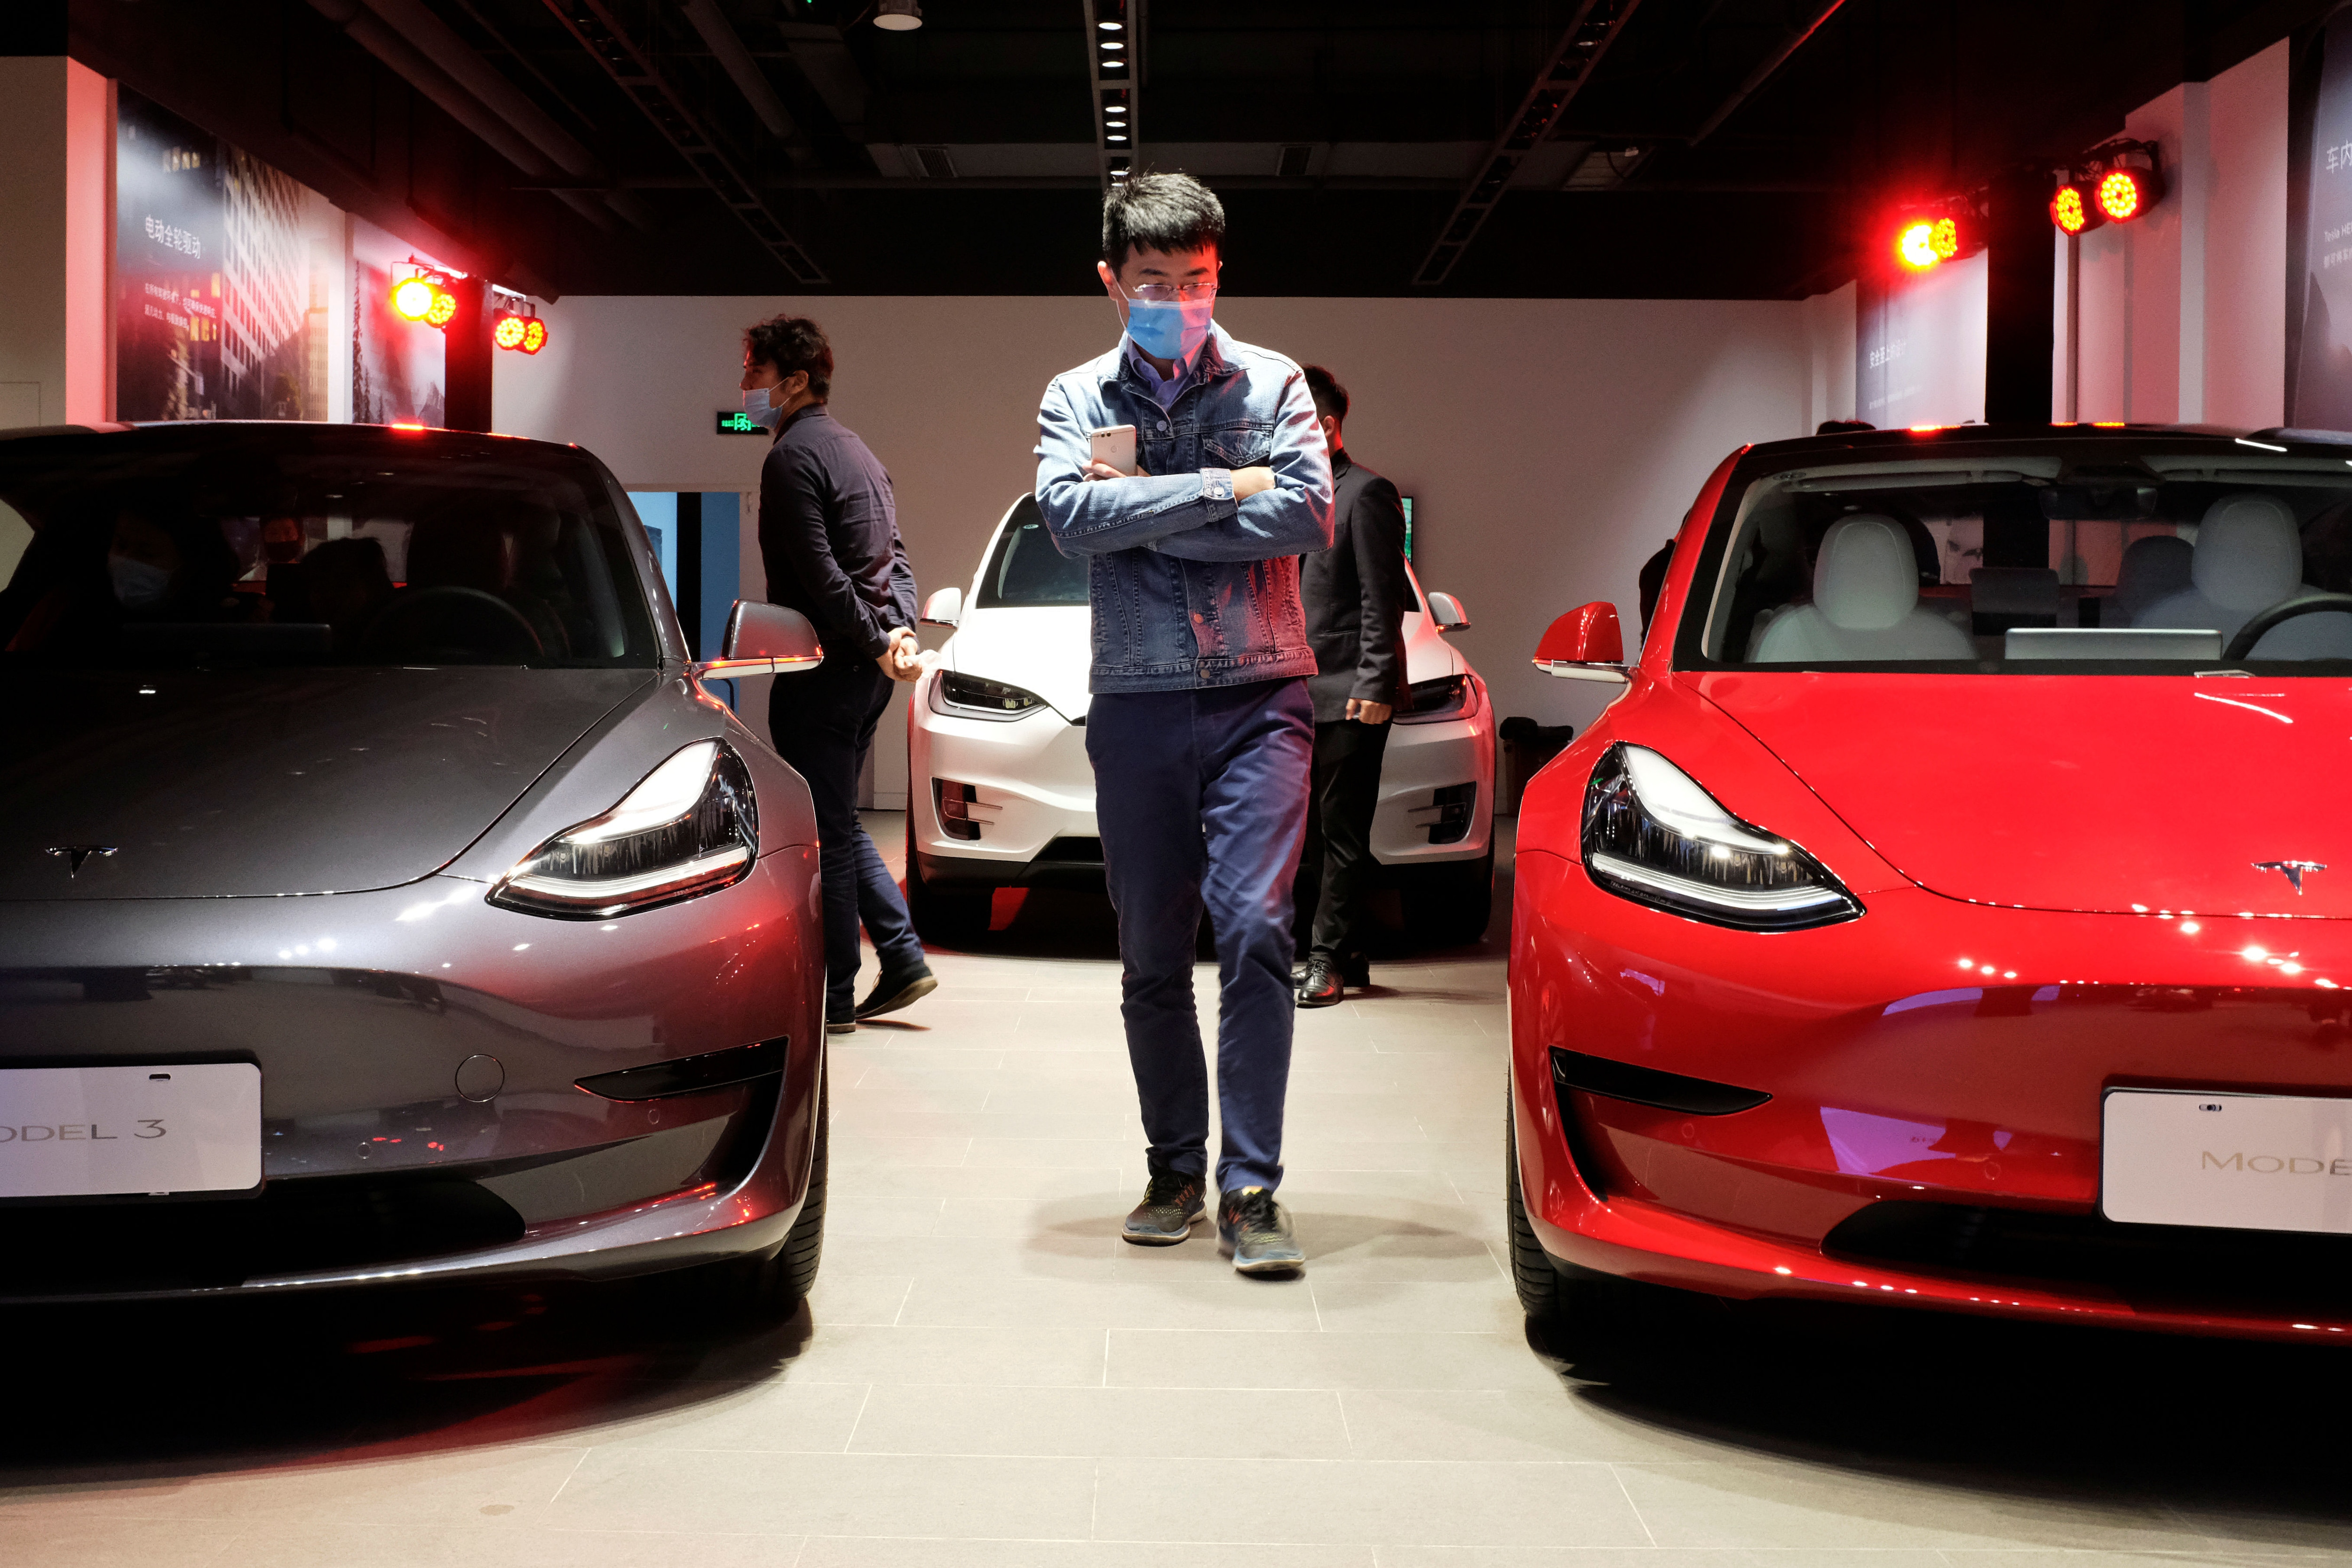 Auto demand rebound in China is reportedly attributed to easier finance options available such as a five-year package that requires customers to pay only around 4,000 or 5,000 yuan a month. Some Chinese cities have also rolled out cash incentives for people who exchange their old vehicles for newer ones. (REUTERS)